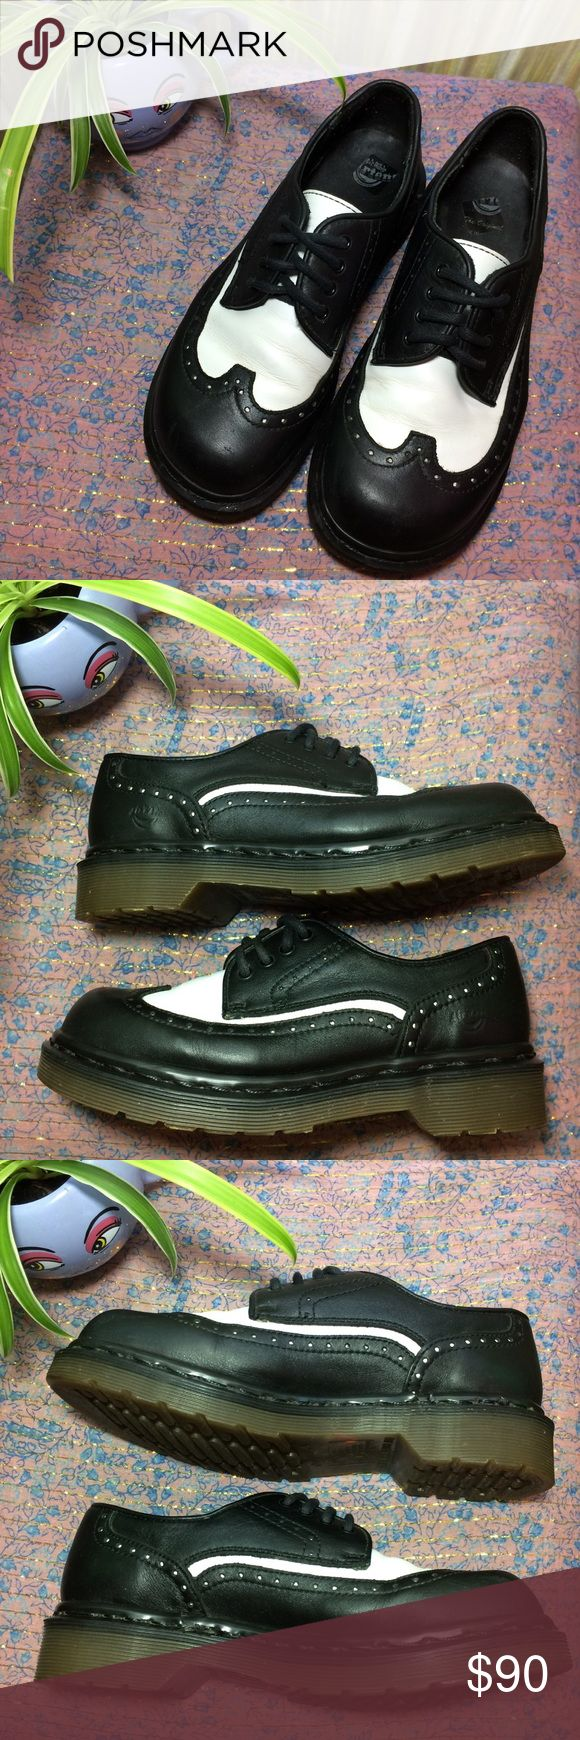 """Vintage Dr. Martens Leather Wingtip Oxfords Black White Leather Wingtip Oxfords. UK 4. US Women's 6. Made in England 🇬🇧 Normal creasing. Minor scuffing on toes. In amazing vintage condition. Includes original black laces & brand new ribbon laces.  Insole-9.25""""  🚫 I don't discuss prices through comments, please use the offer button!  ⚡️ Same-day or next-day shipping 📬 All packages handled with care 📦 Bundle 2+ items for a discount 👽 Follow for new items & sale updates 🏡 Pet-free…"""